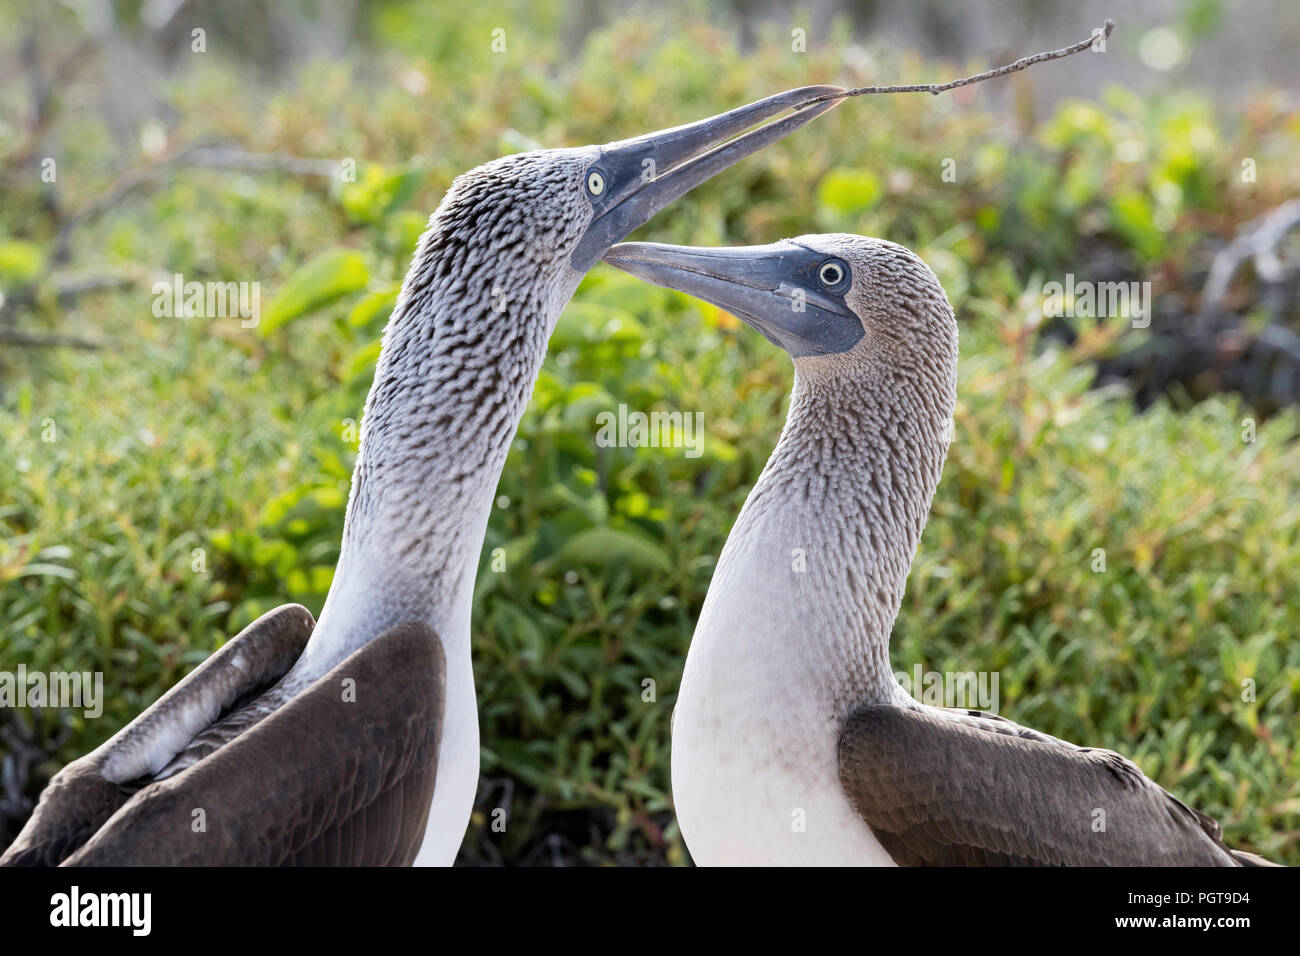 Blue-footed booby, Sula nebouxii, pair in courtship display on North Seymour Island, Galápagos, Ecuador. Stock Photo